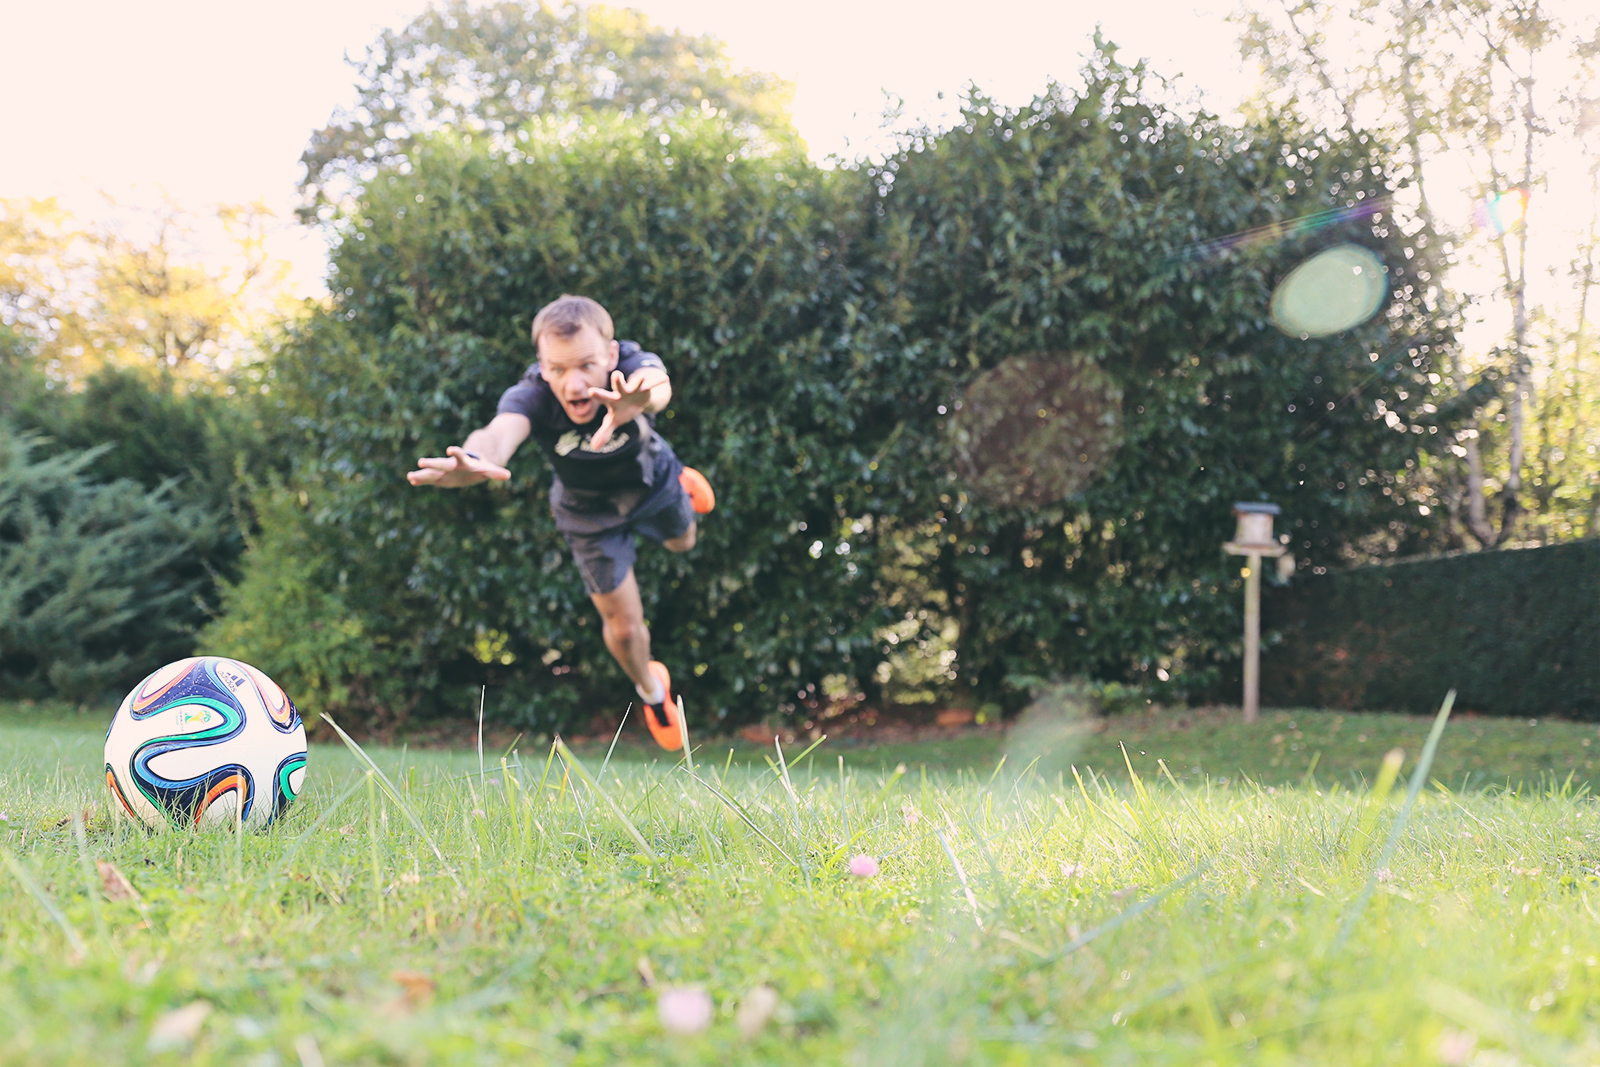 An attempt at a cool soccer stock photo. We mis-timed the ball drop, and it fell too soon.